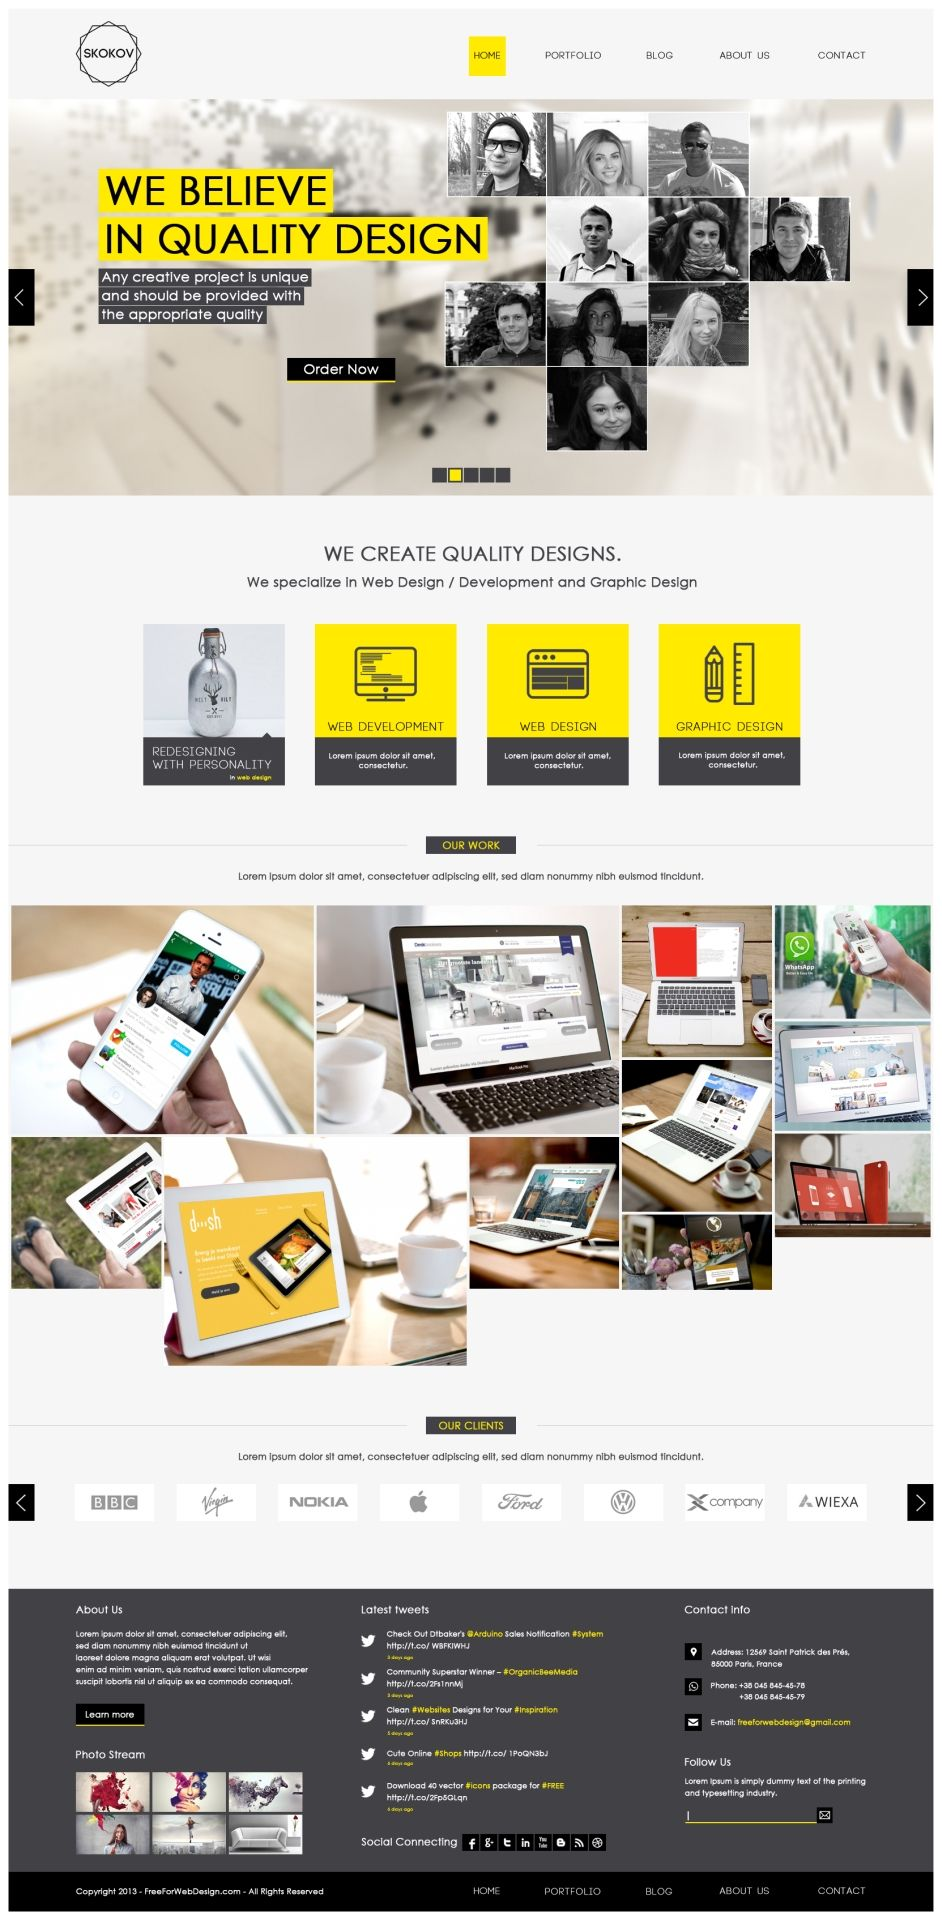 skokov corporate web design template psd psd skokov corporate web design template psd